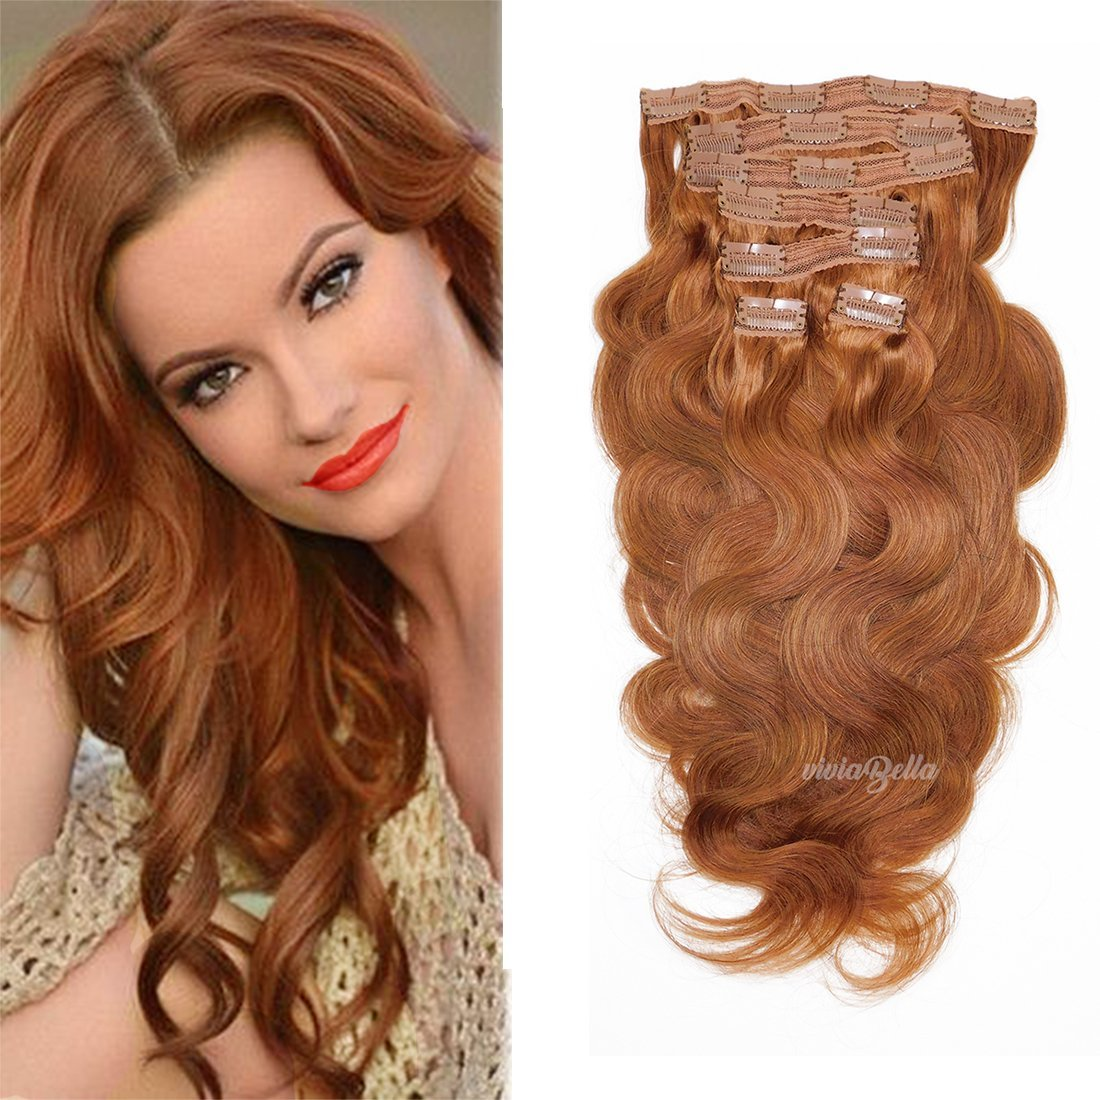 "Full Head Clip in Hair Extensions Body Wave Human Hair Brazilian Virgin Hair Double Weft 7Pcs/lot 120g/set (20"", Copper Red)"